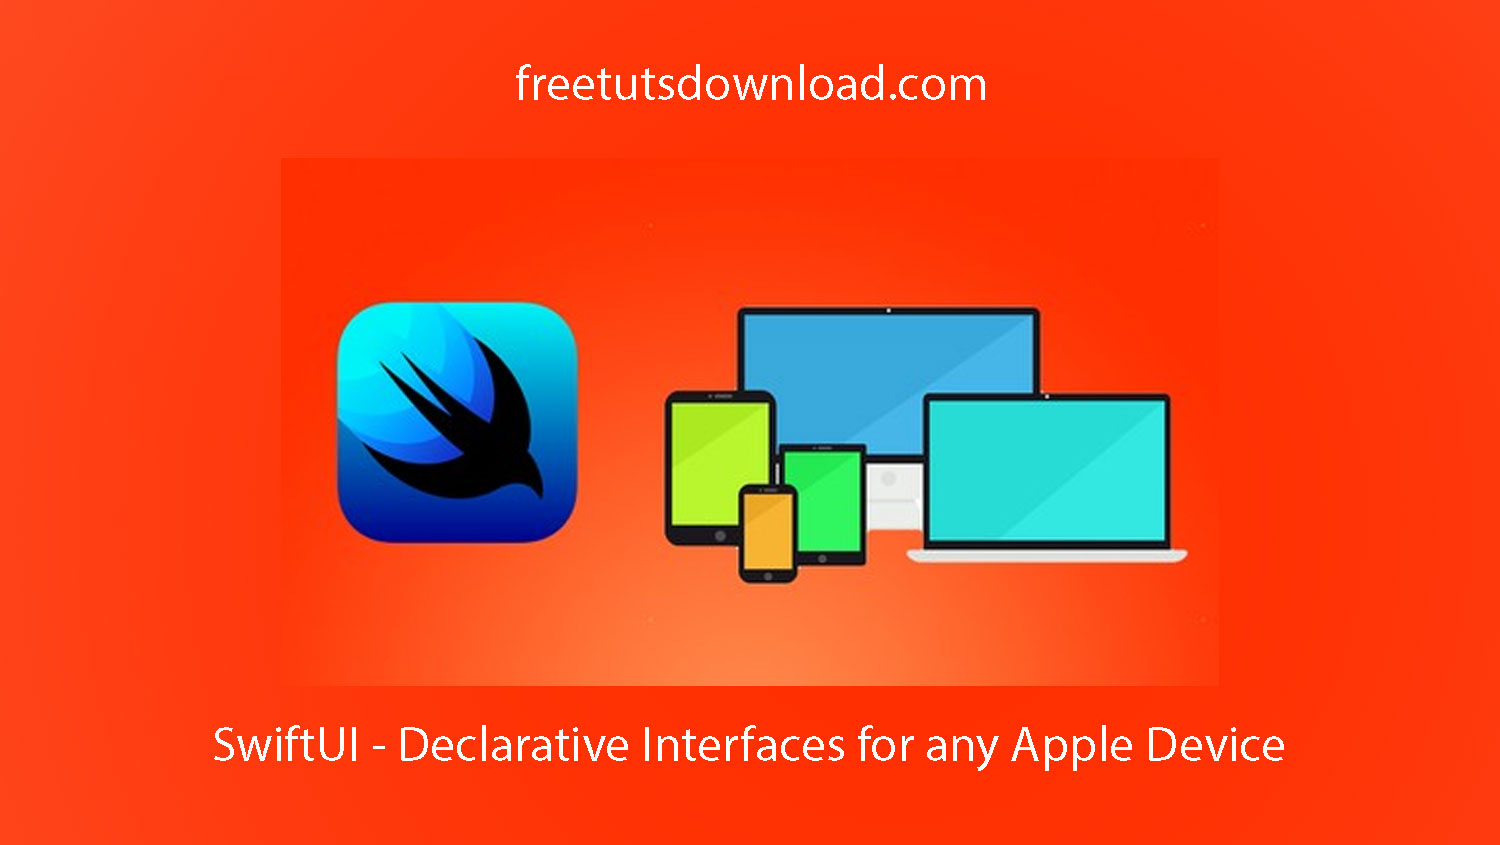 SwiftUI - Declarative Interfaces for any Apple Device